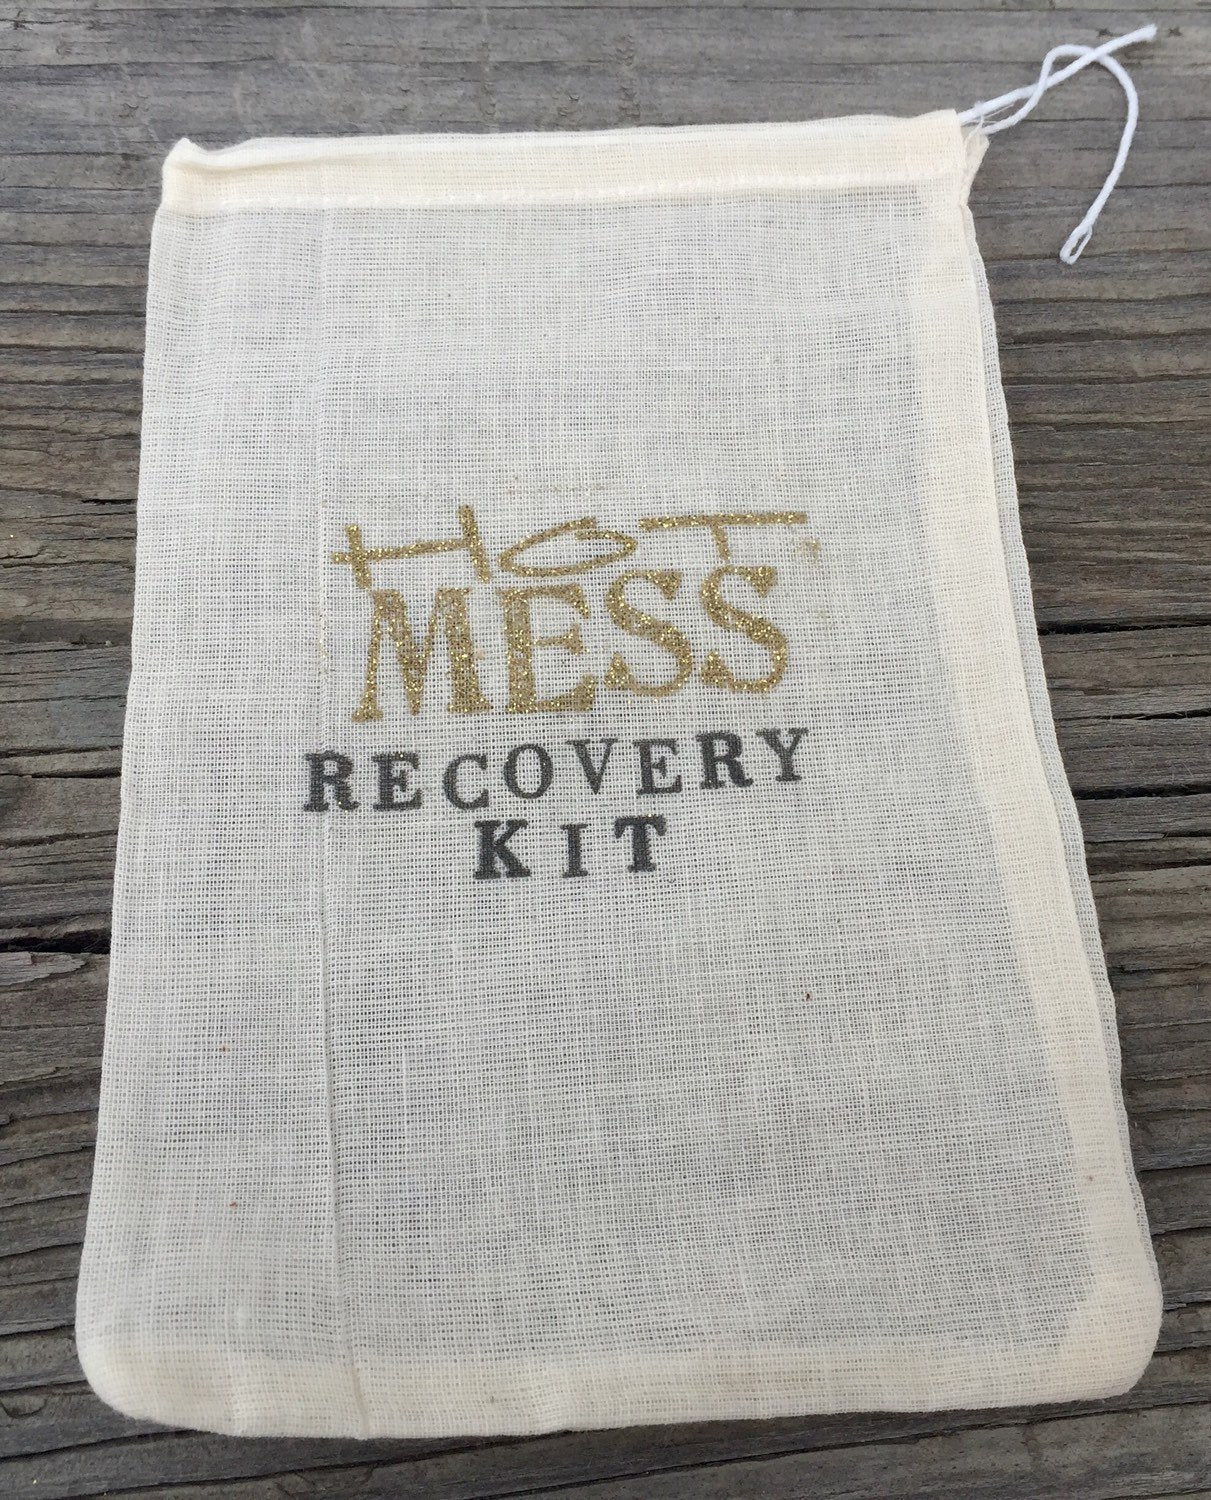 10 Gold Hot Mess recovery kits, 5x7,  bachelorette party favor bags, hangover kits, hangover favors, bridesmaid gifts